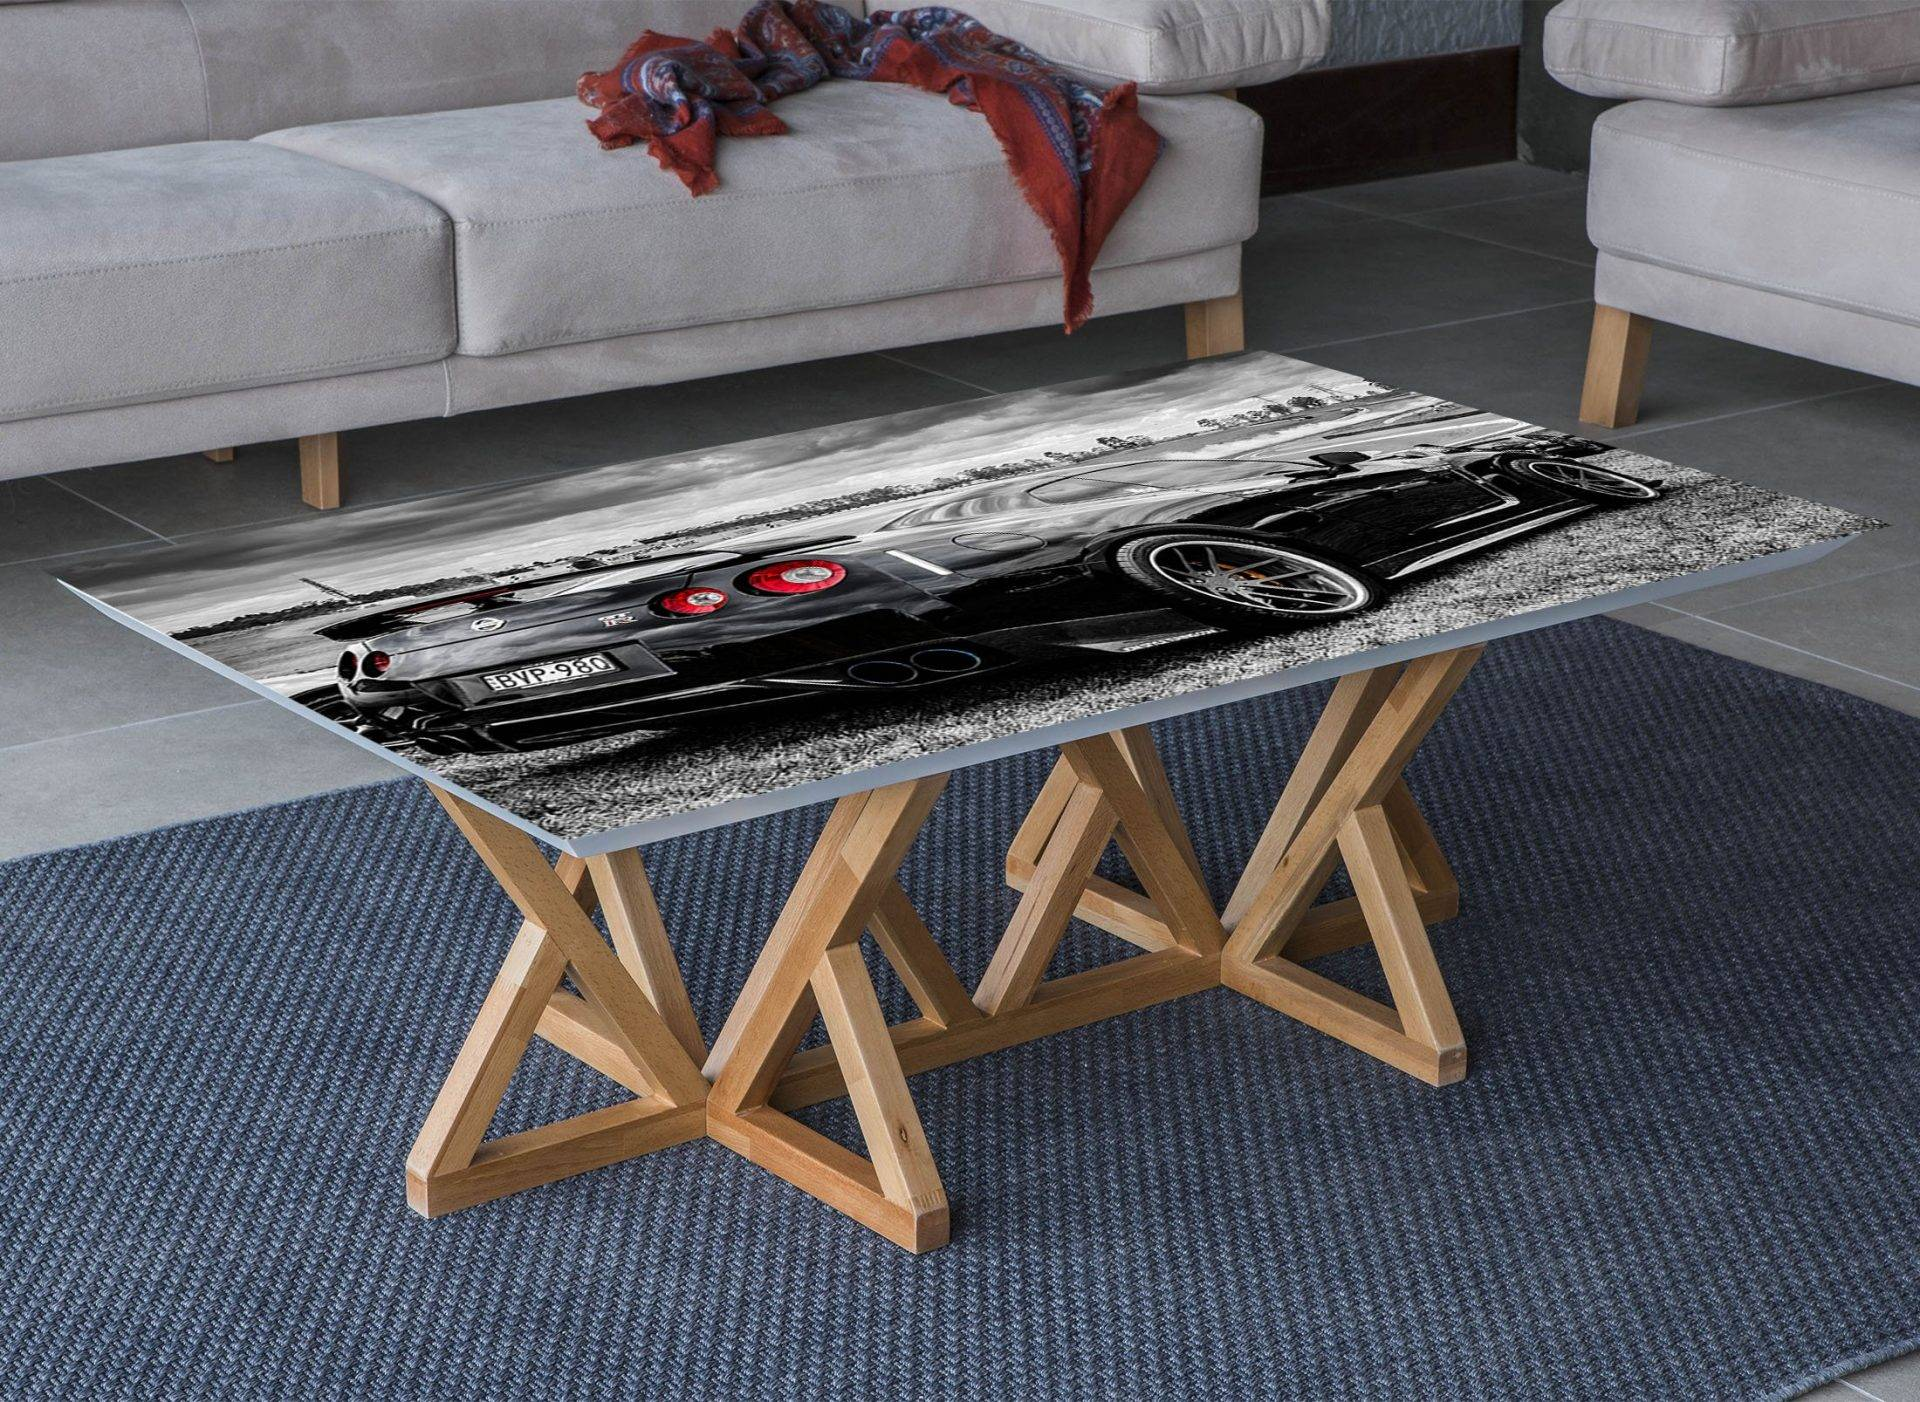 Nissan Skyline Black Laminated Vinyl Cover Self-Adhesive for Desk and Tables